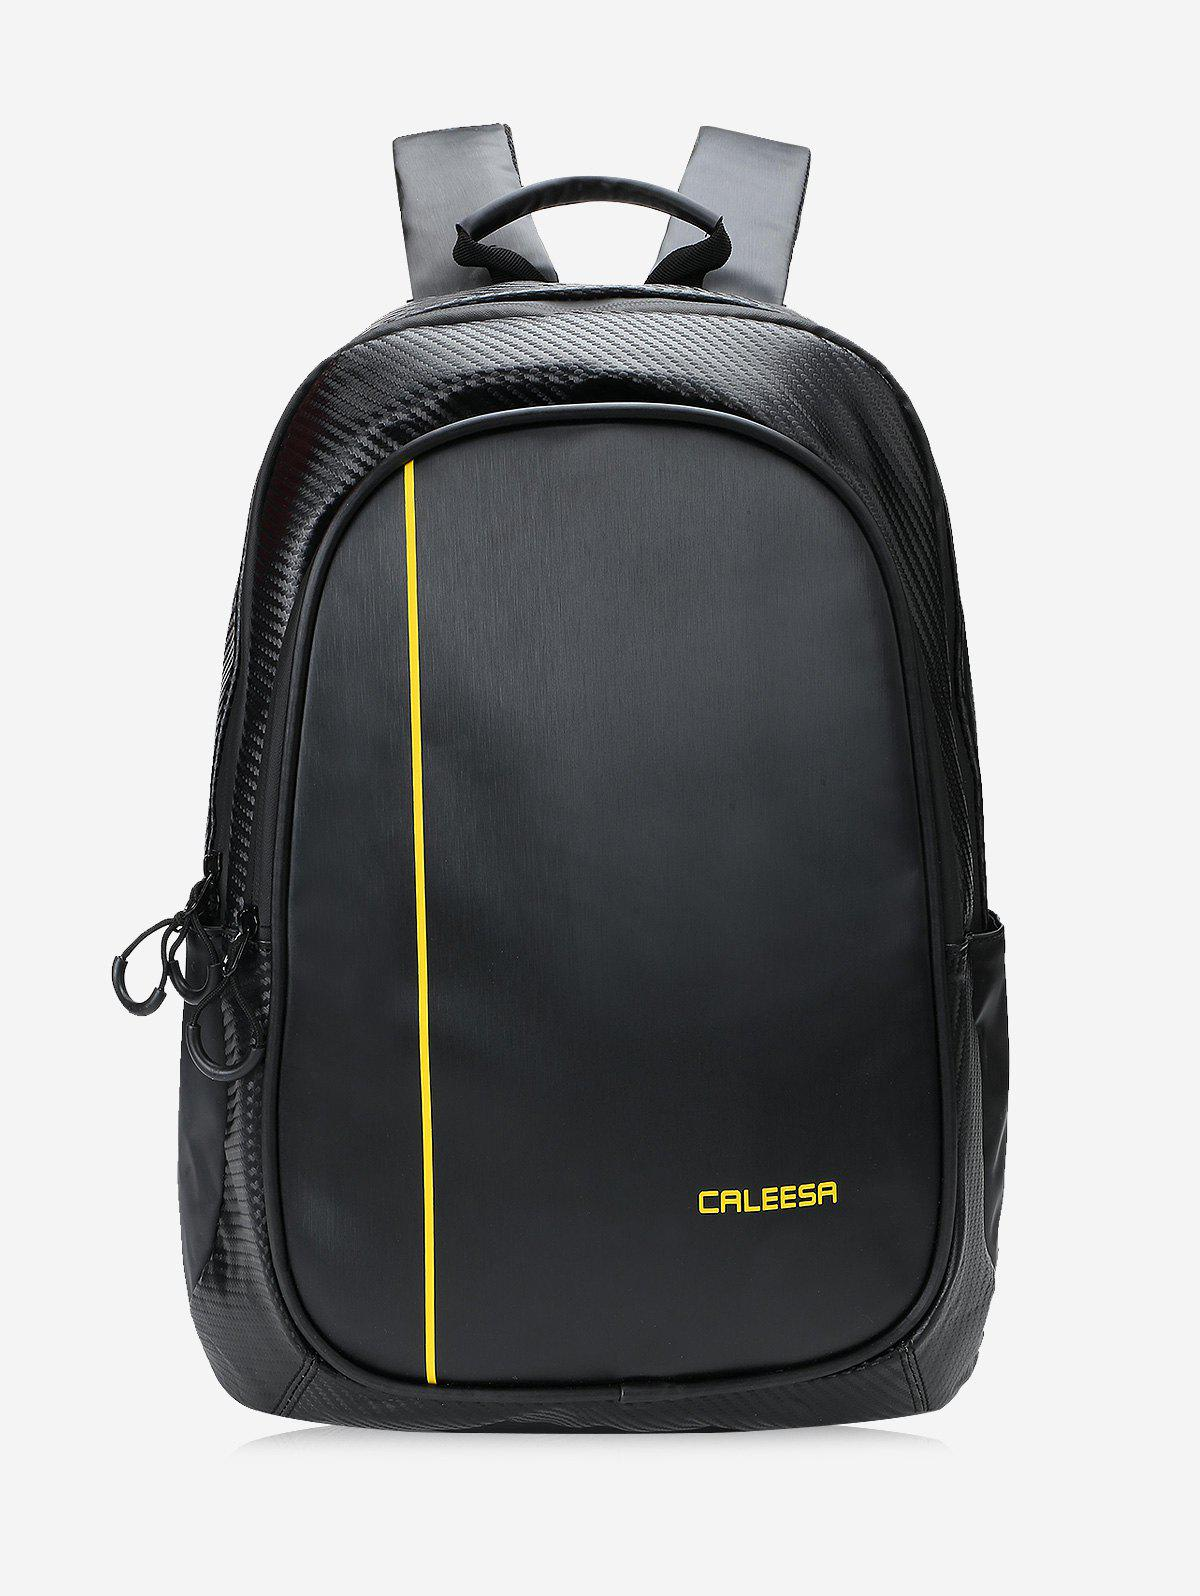 Best Line Large Capacity Backpack for Laptop